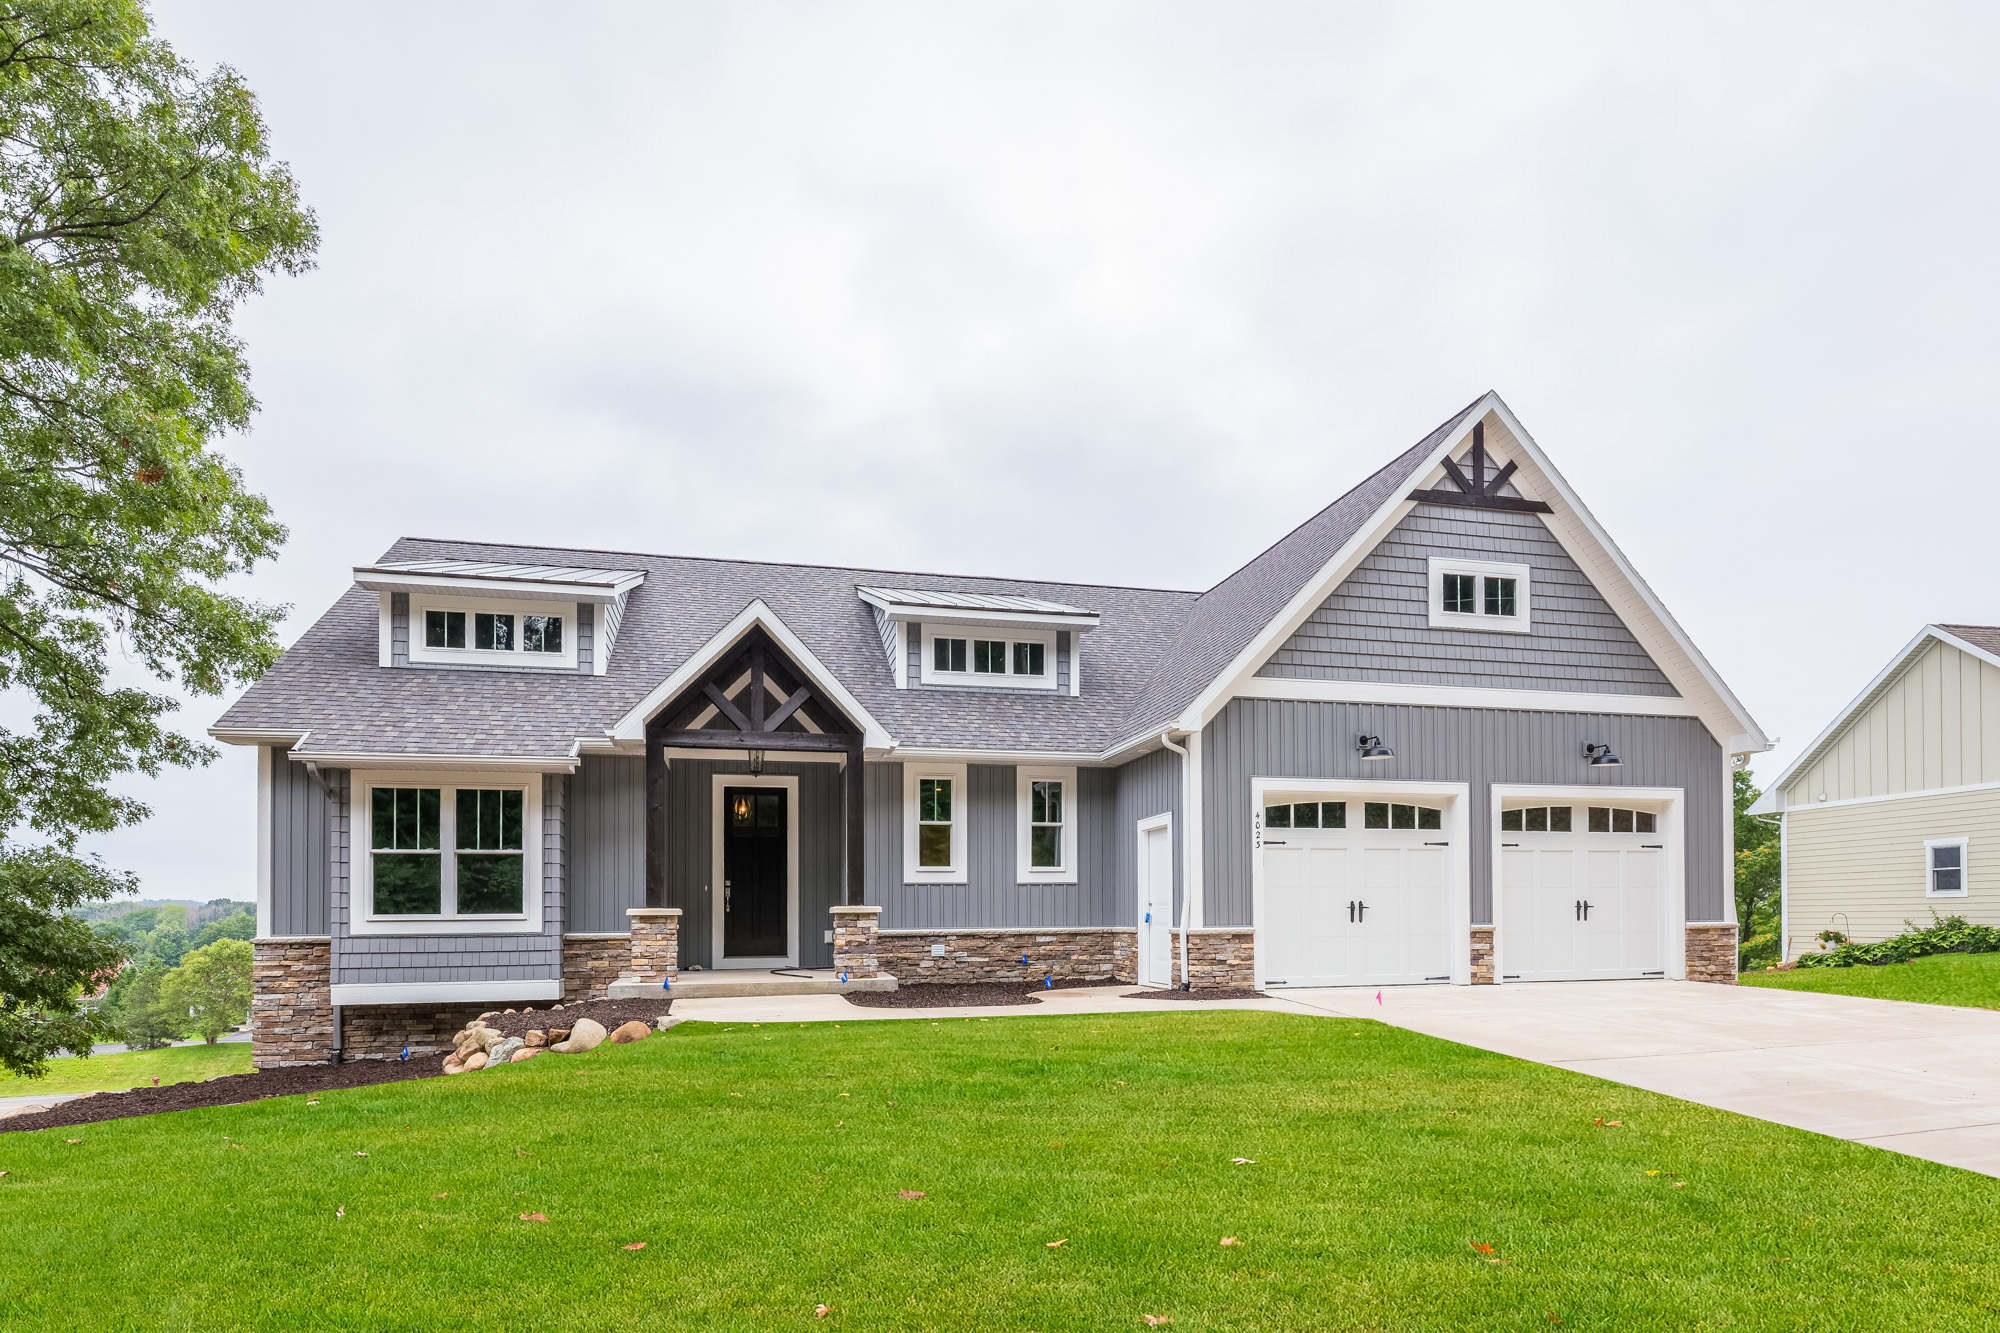 4023 Dragonfly Ct Whitmore Homes Grand Rapids Custom